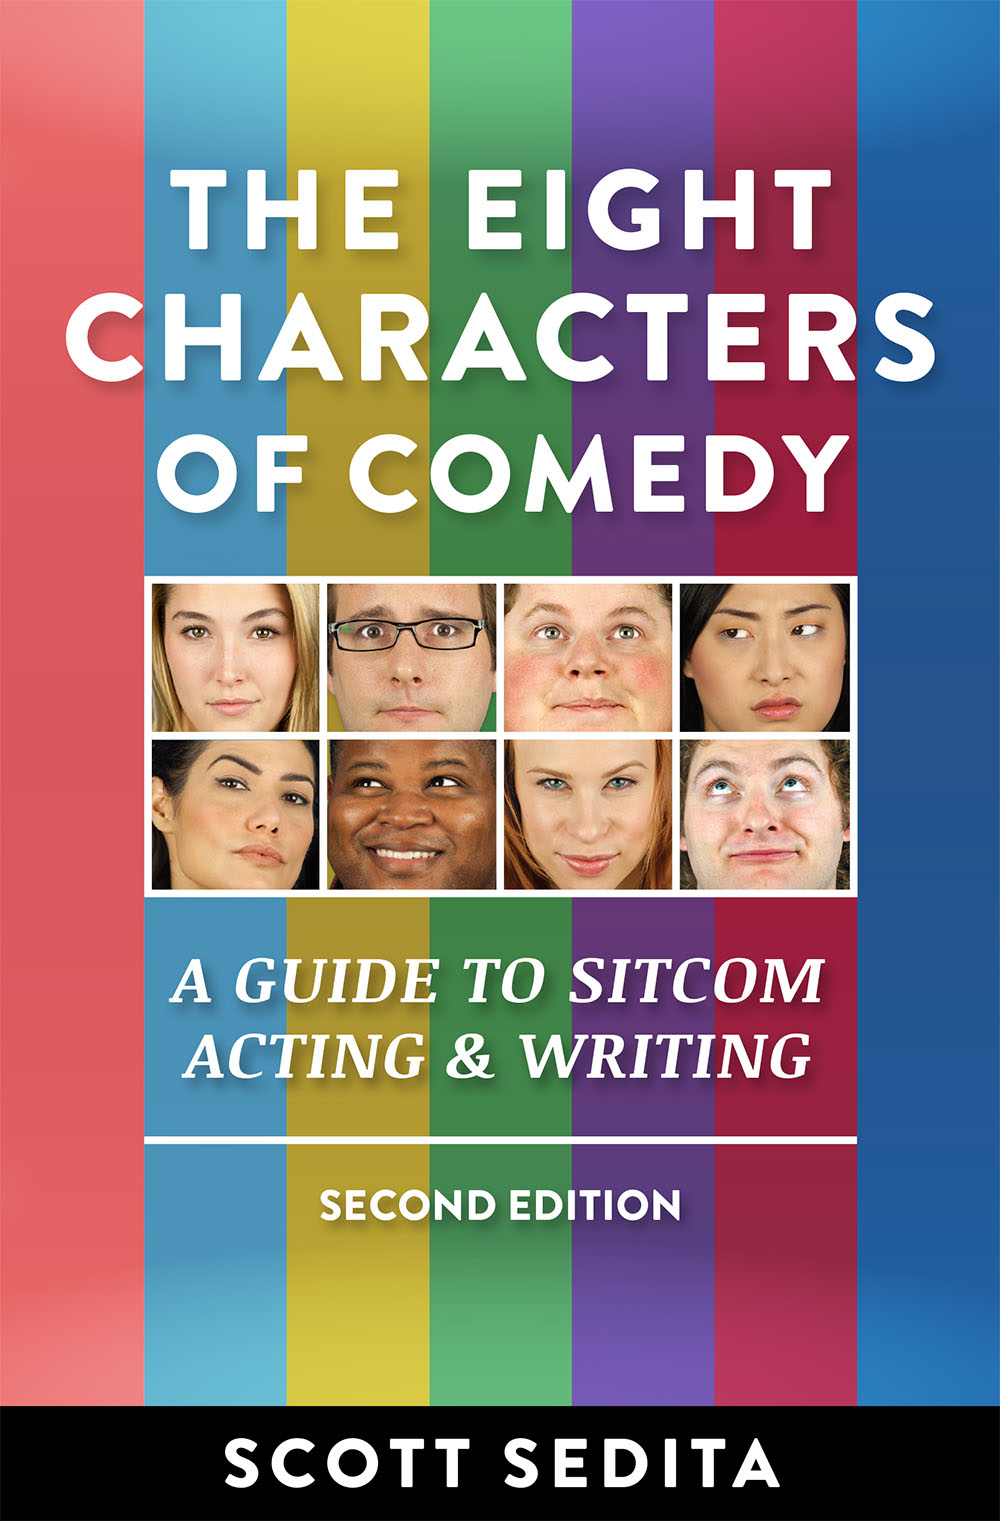 Scott Sedita's The Eight Characters of Comedy Book